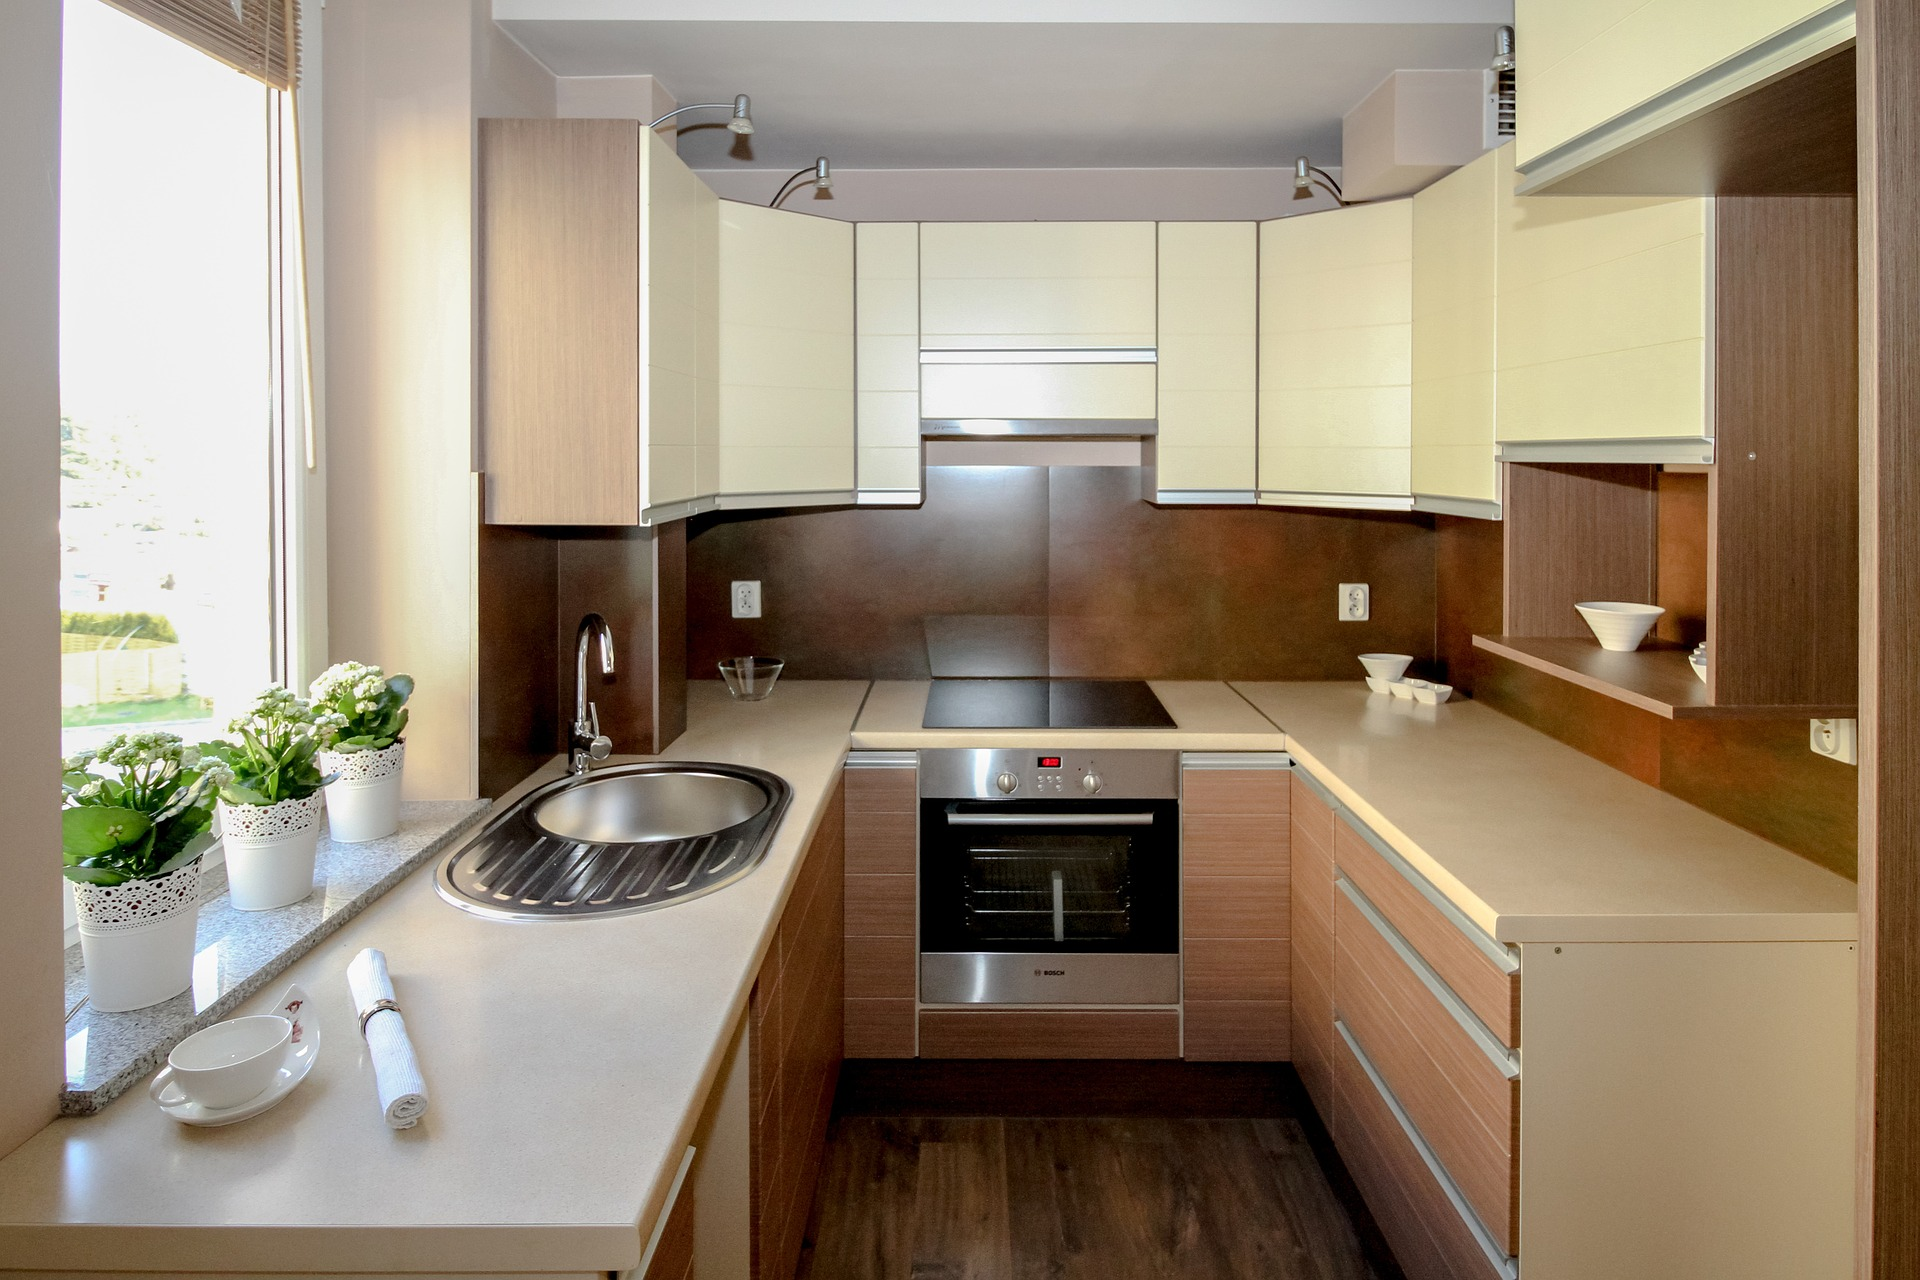 Modular Kitchen Design For Small Area In India Small Modular Indian Kitchen Designs